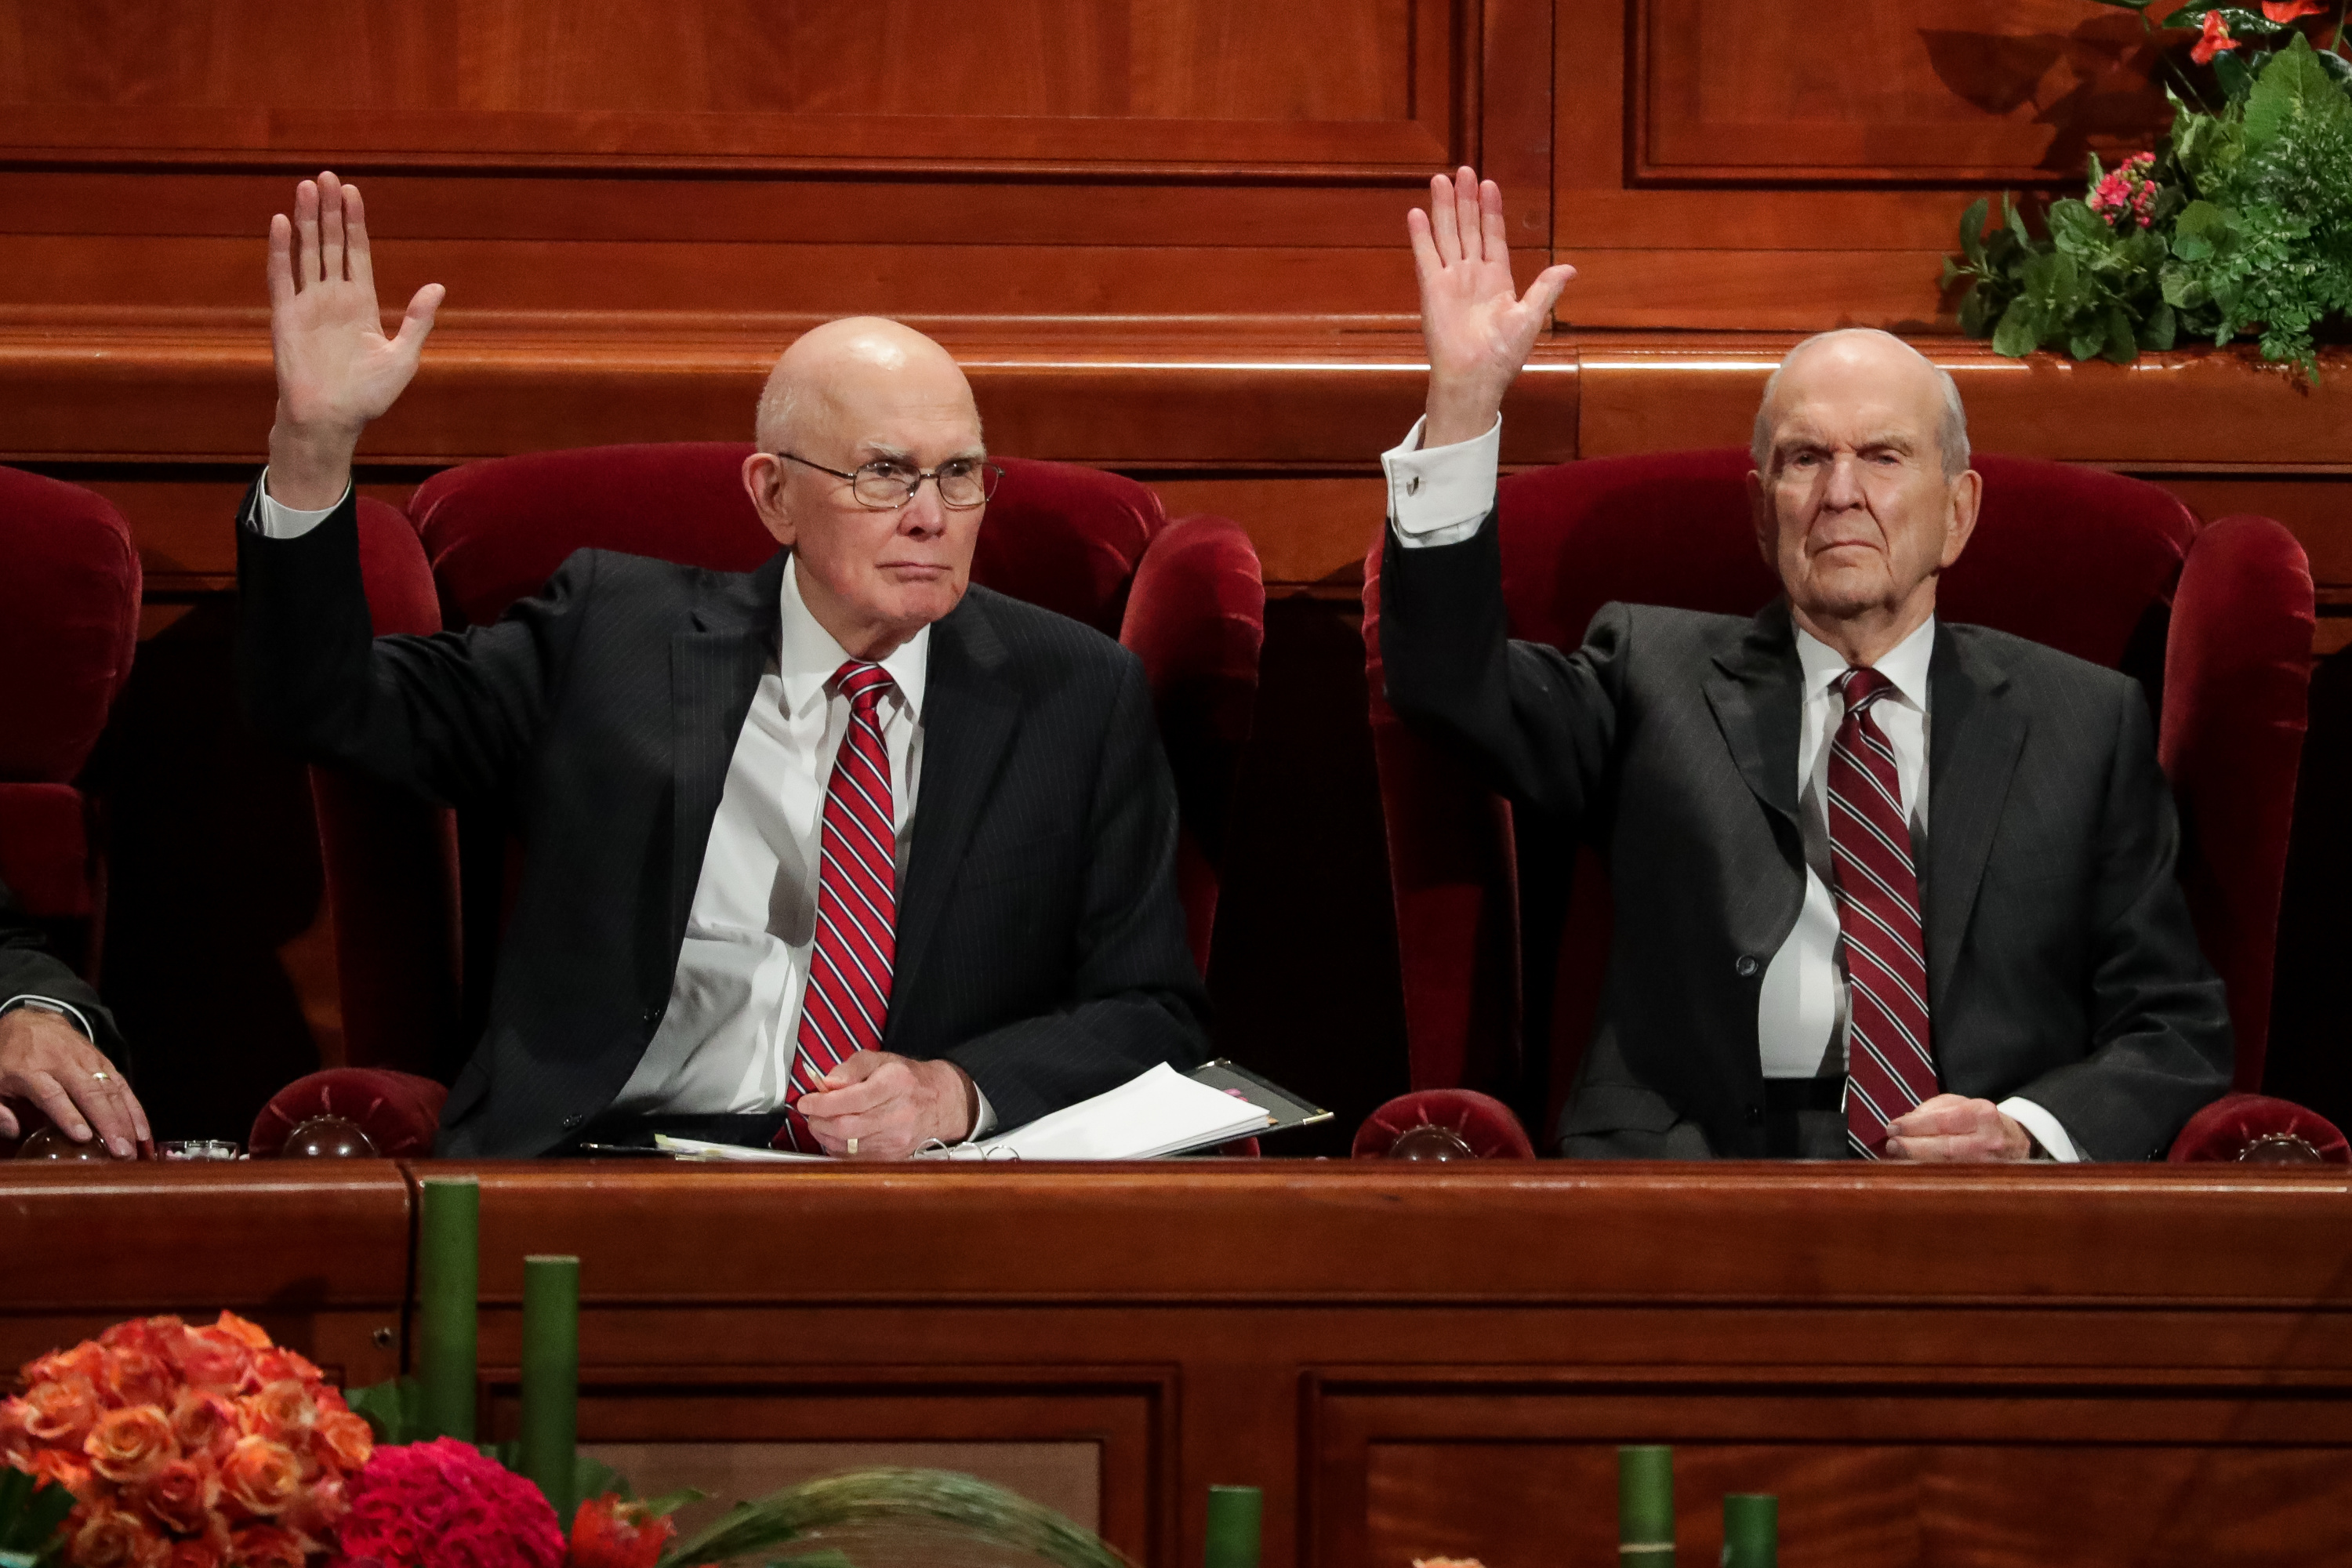 President Dallin H. Oaks, first counselor in the First Presidency, left, and President Russell M. Nelson, right, raise their hands to sustain church leaders during the Saturday afternoon session of the 188th Semiannual General Conference of The Church of Jesus Christ of Latter-day Saints in the Conference Center in Salt Lake City on Saturday, Oct. 6, 2018.